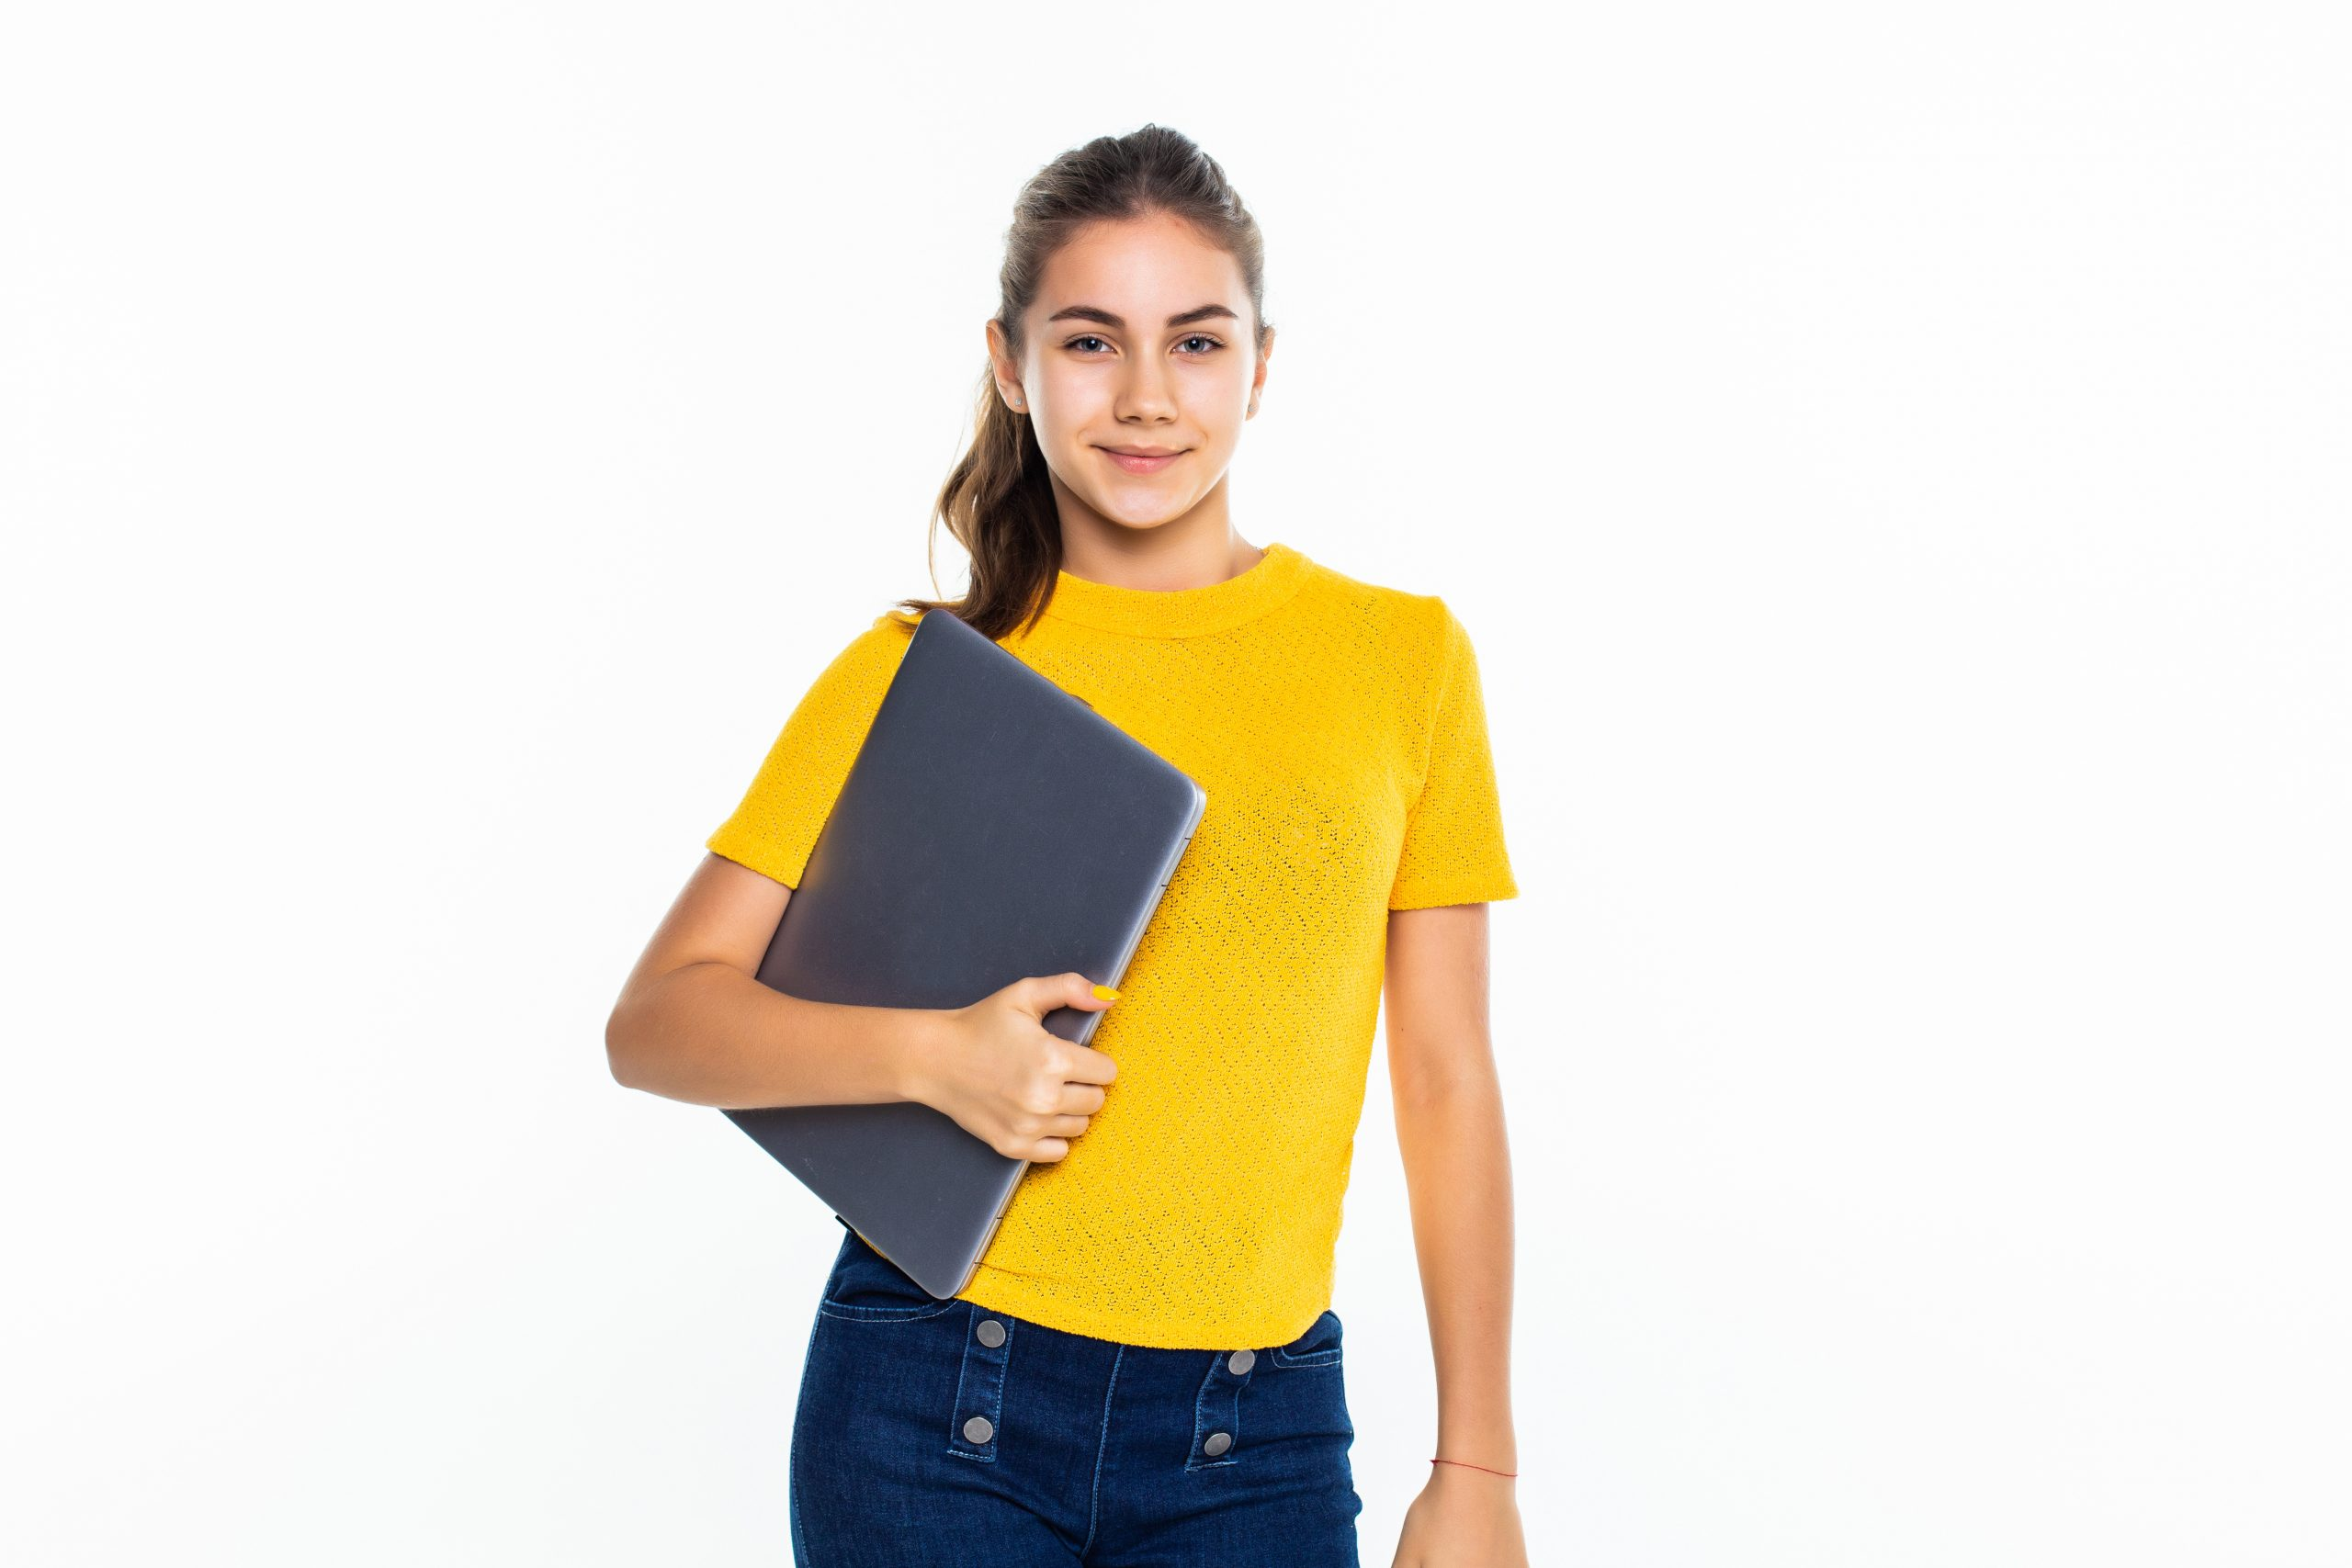 Smiling cute teen girl using laptop over white background